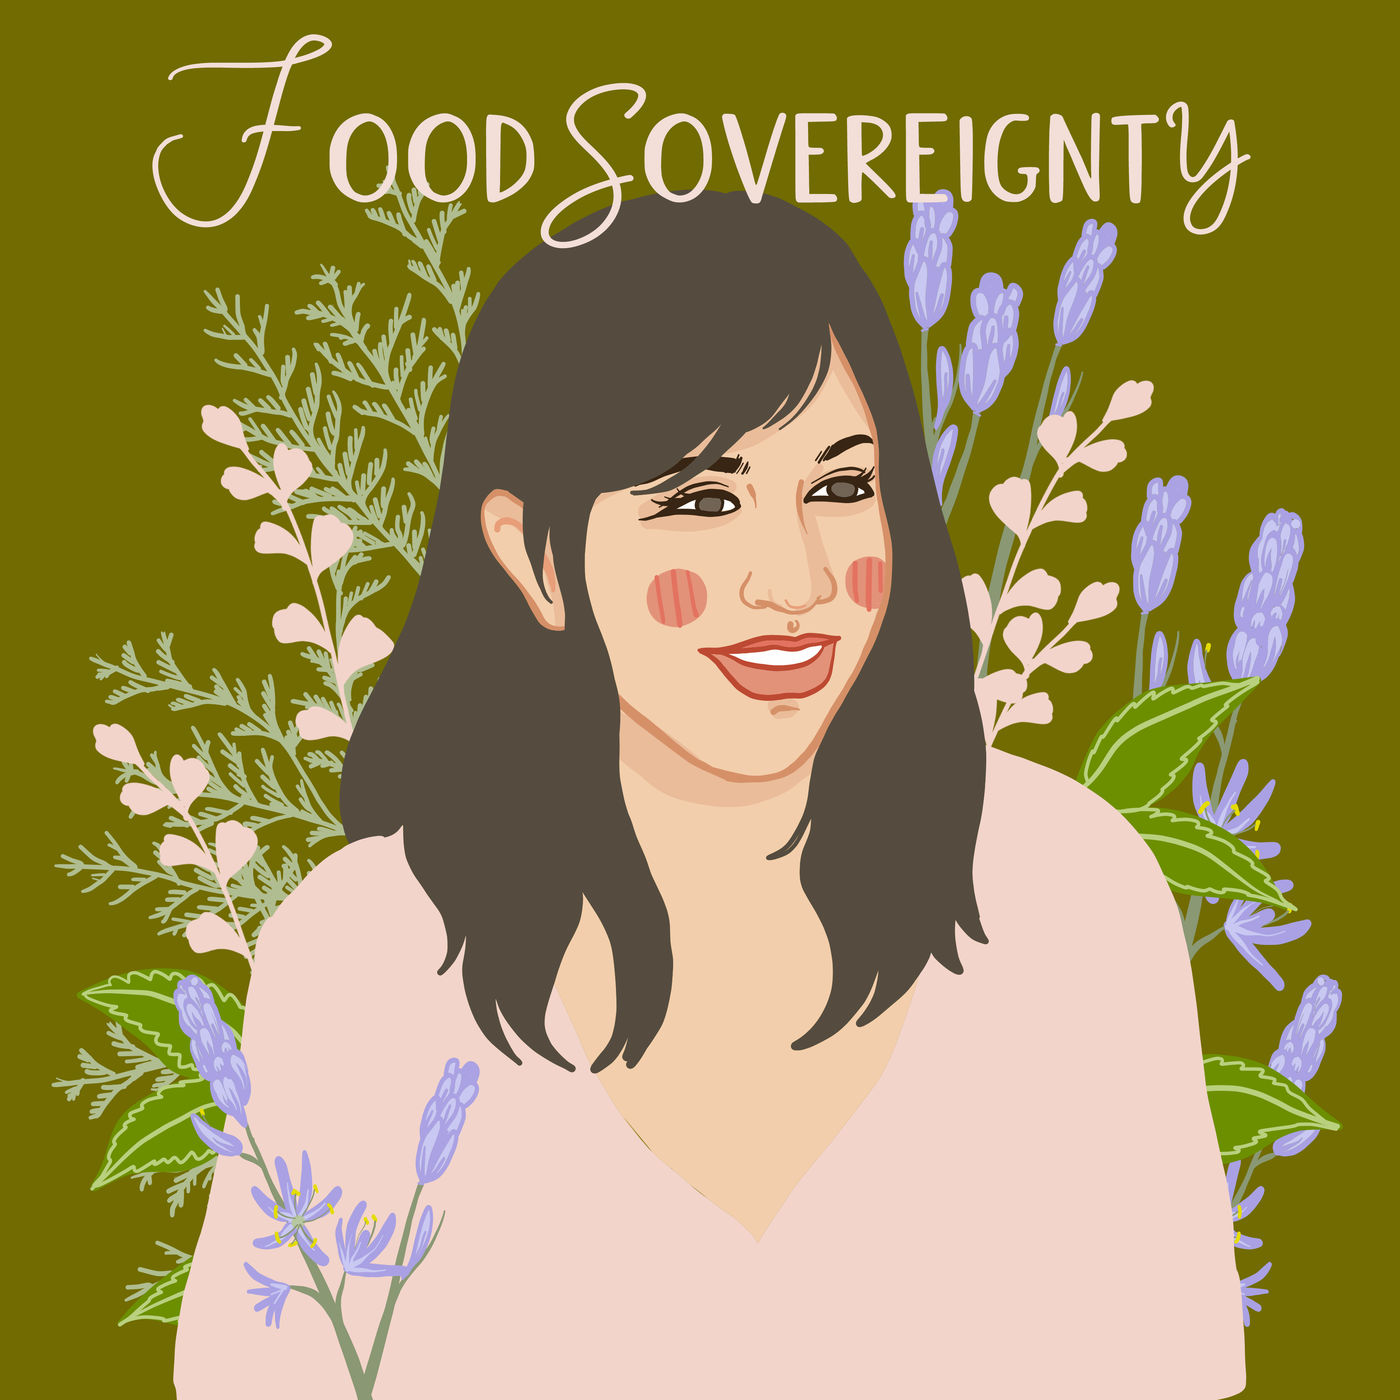 Ep #2: Food Sovereignty: A Growing Movement